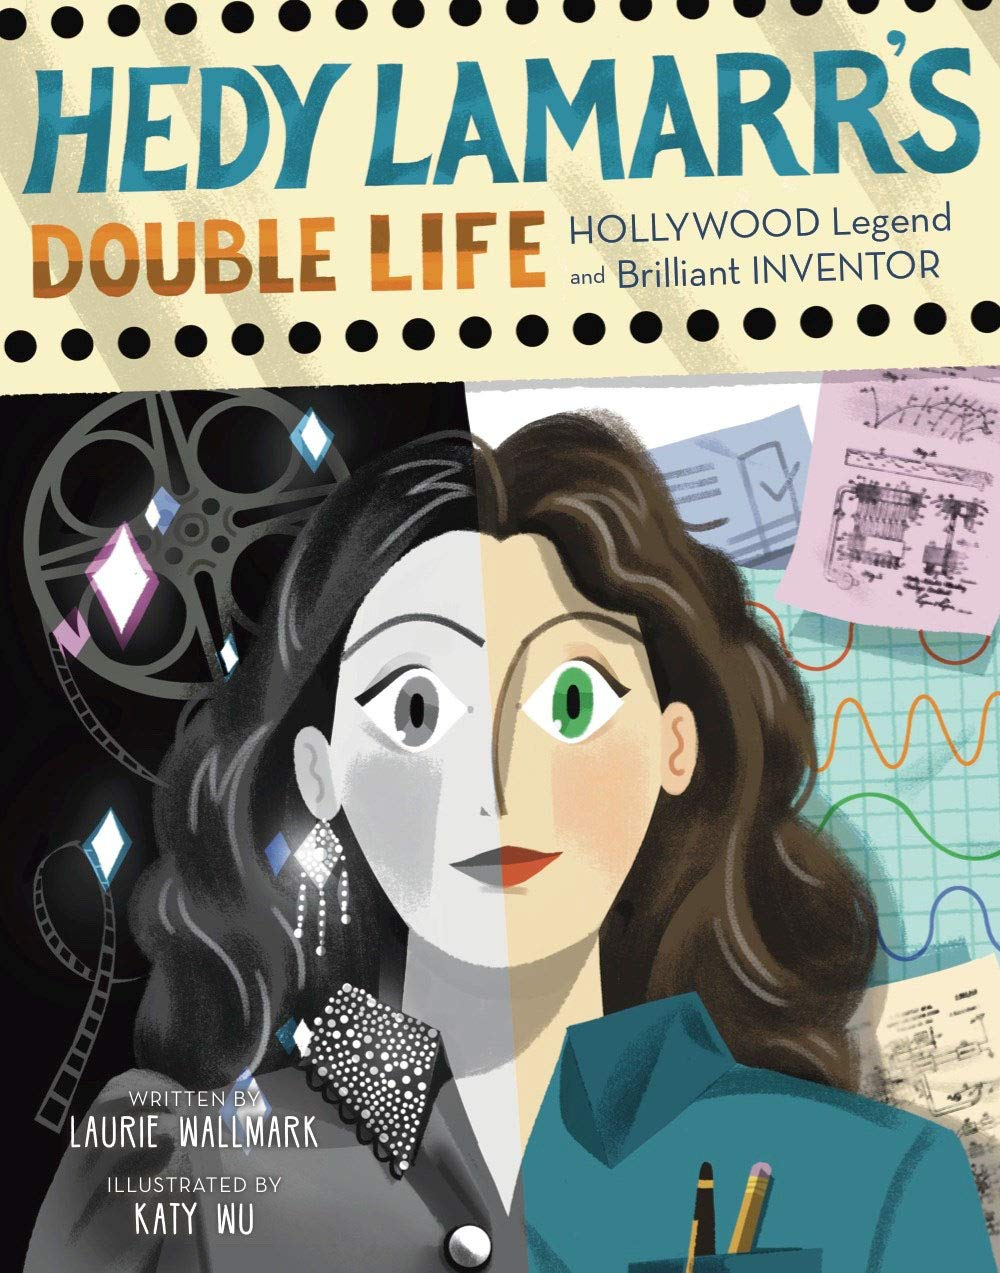 Hedy Lamarr's Double Life- Hollywood Legend and Brilliant Inventor